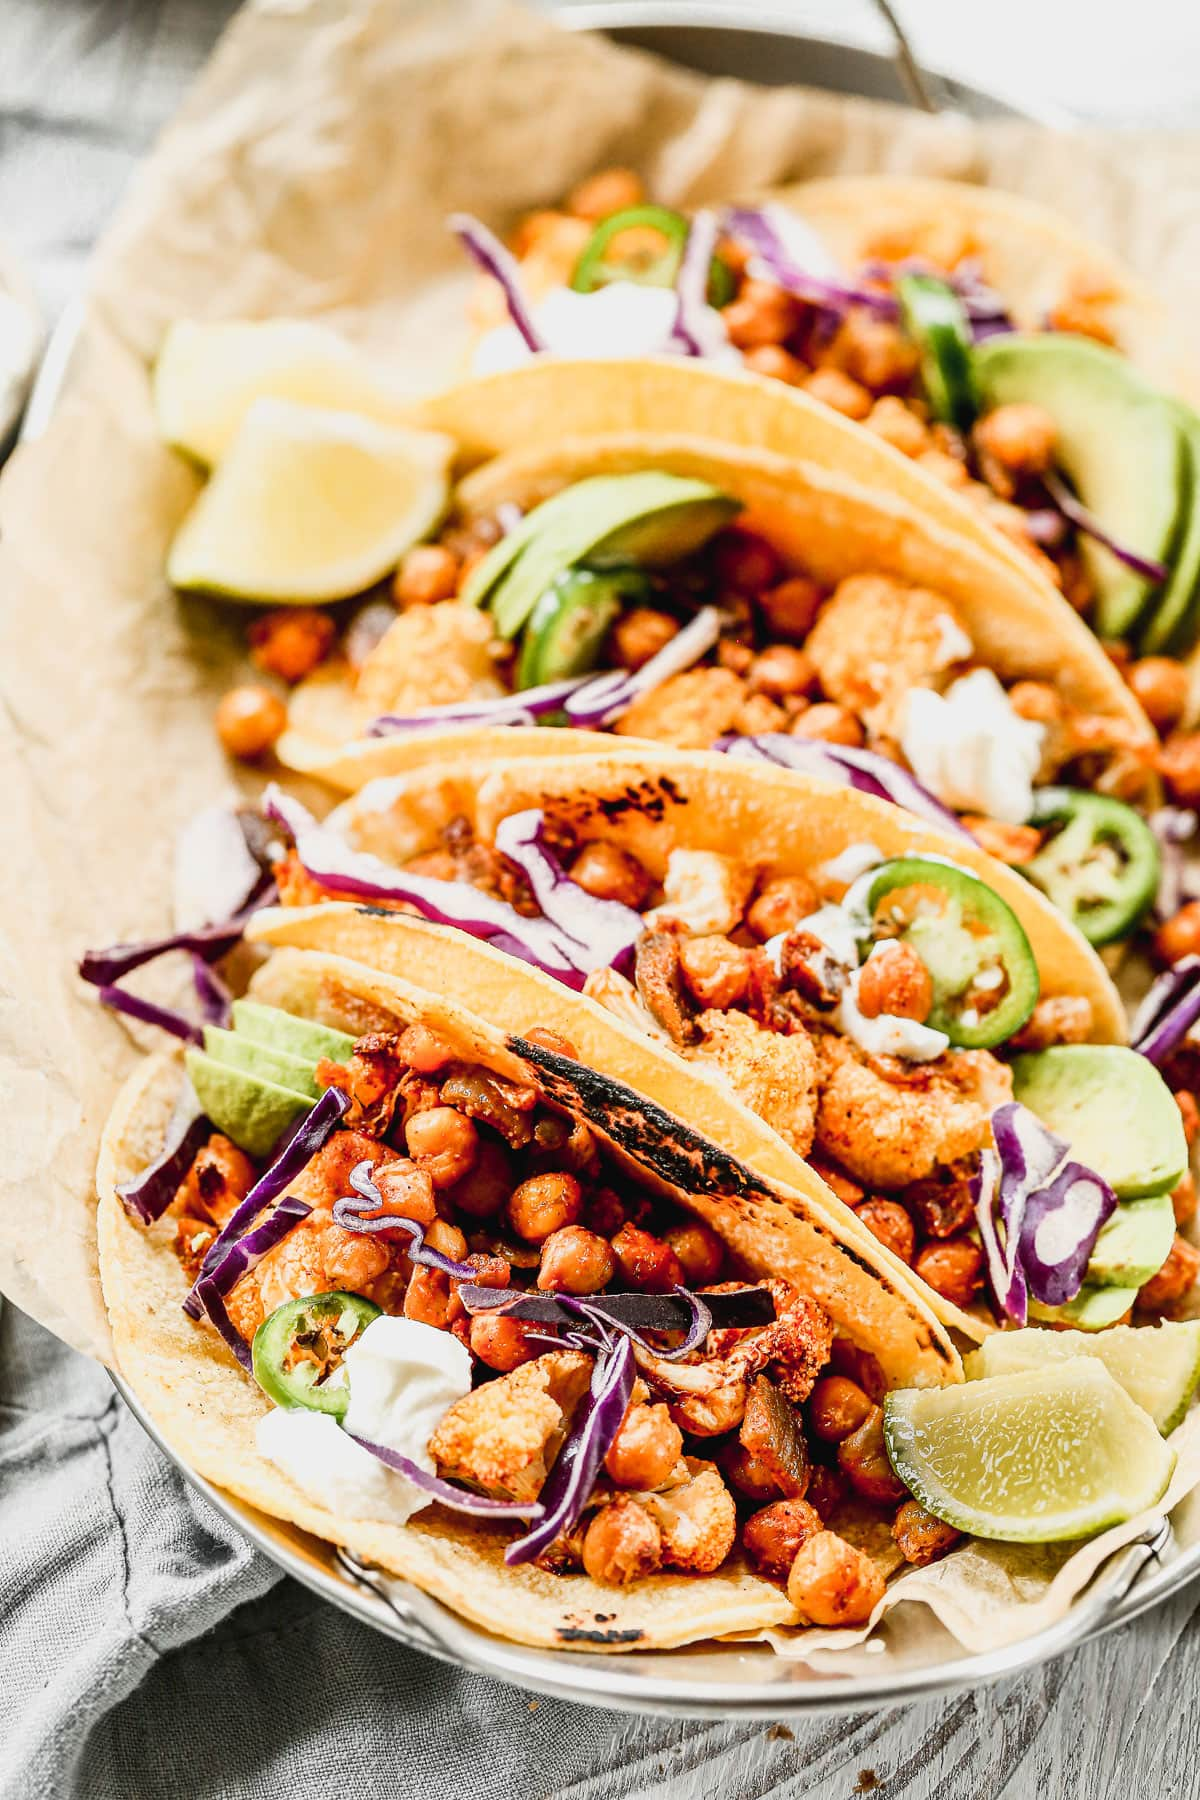 Cauliflower-Tacos-with-Chickpeas